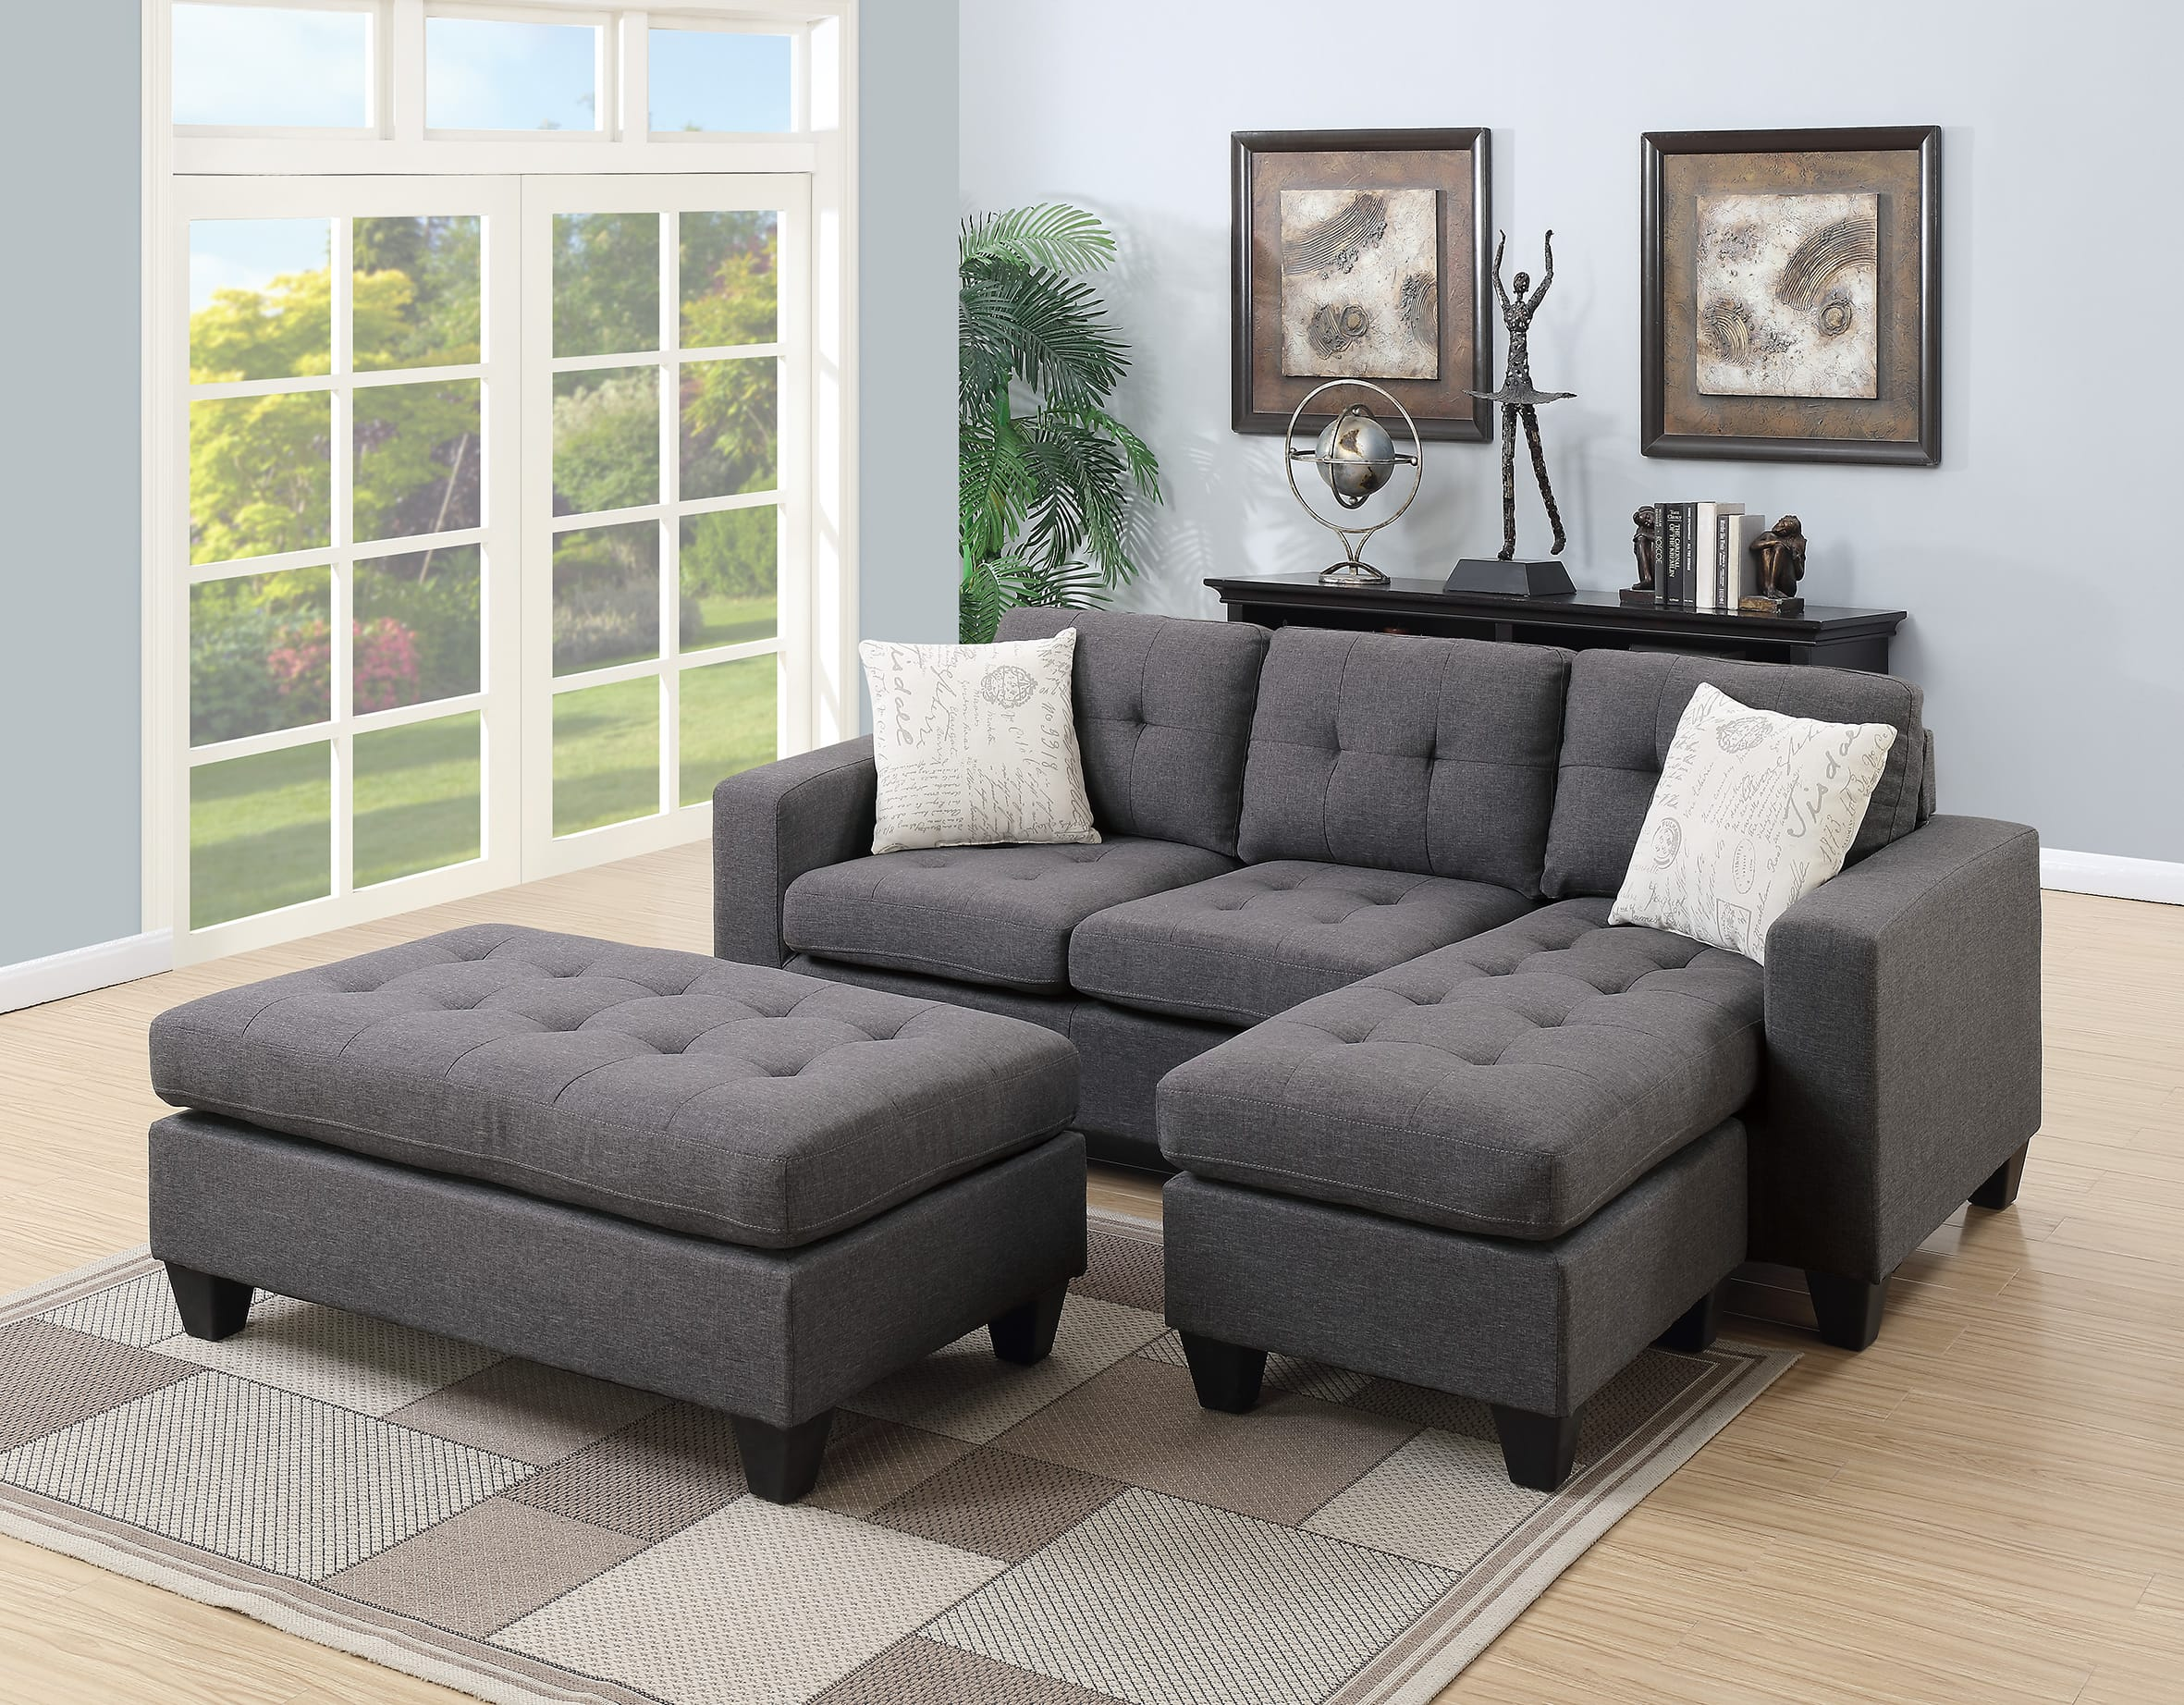 F6920 Blue Gray Sectional Sofa Set by Poundex